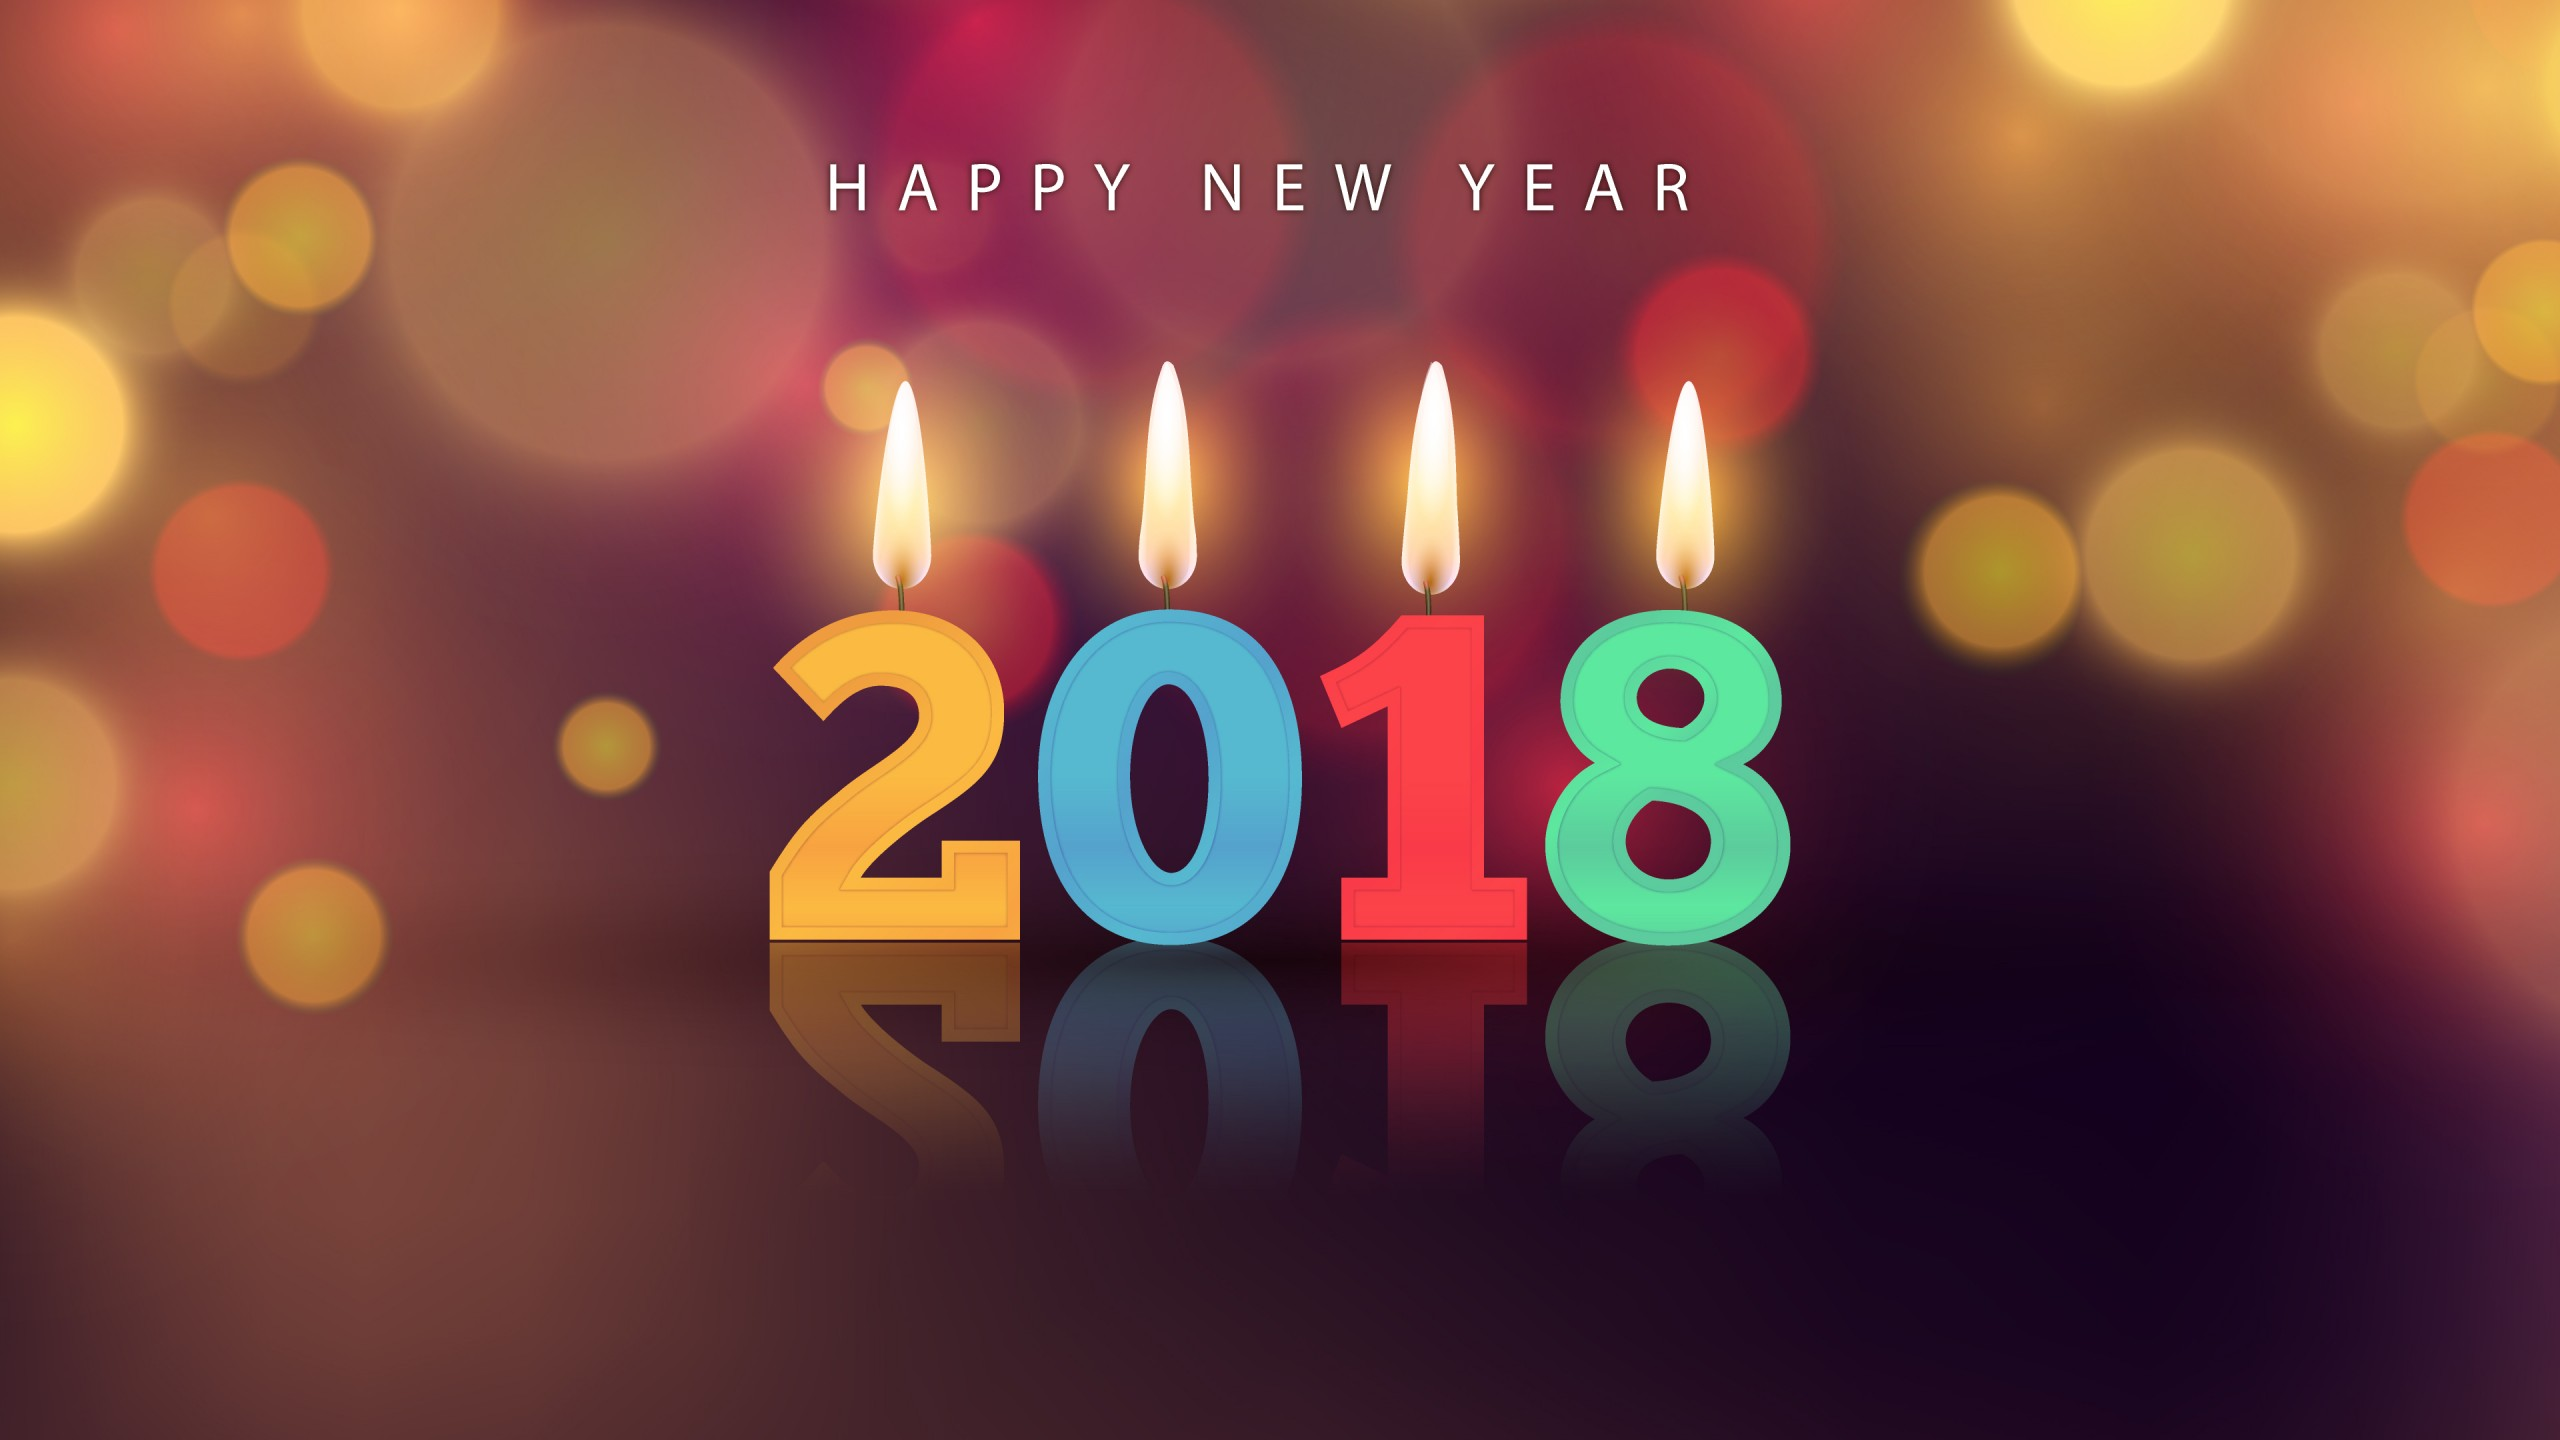 download new year image for whatsapp dp profile pic happy new year images